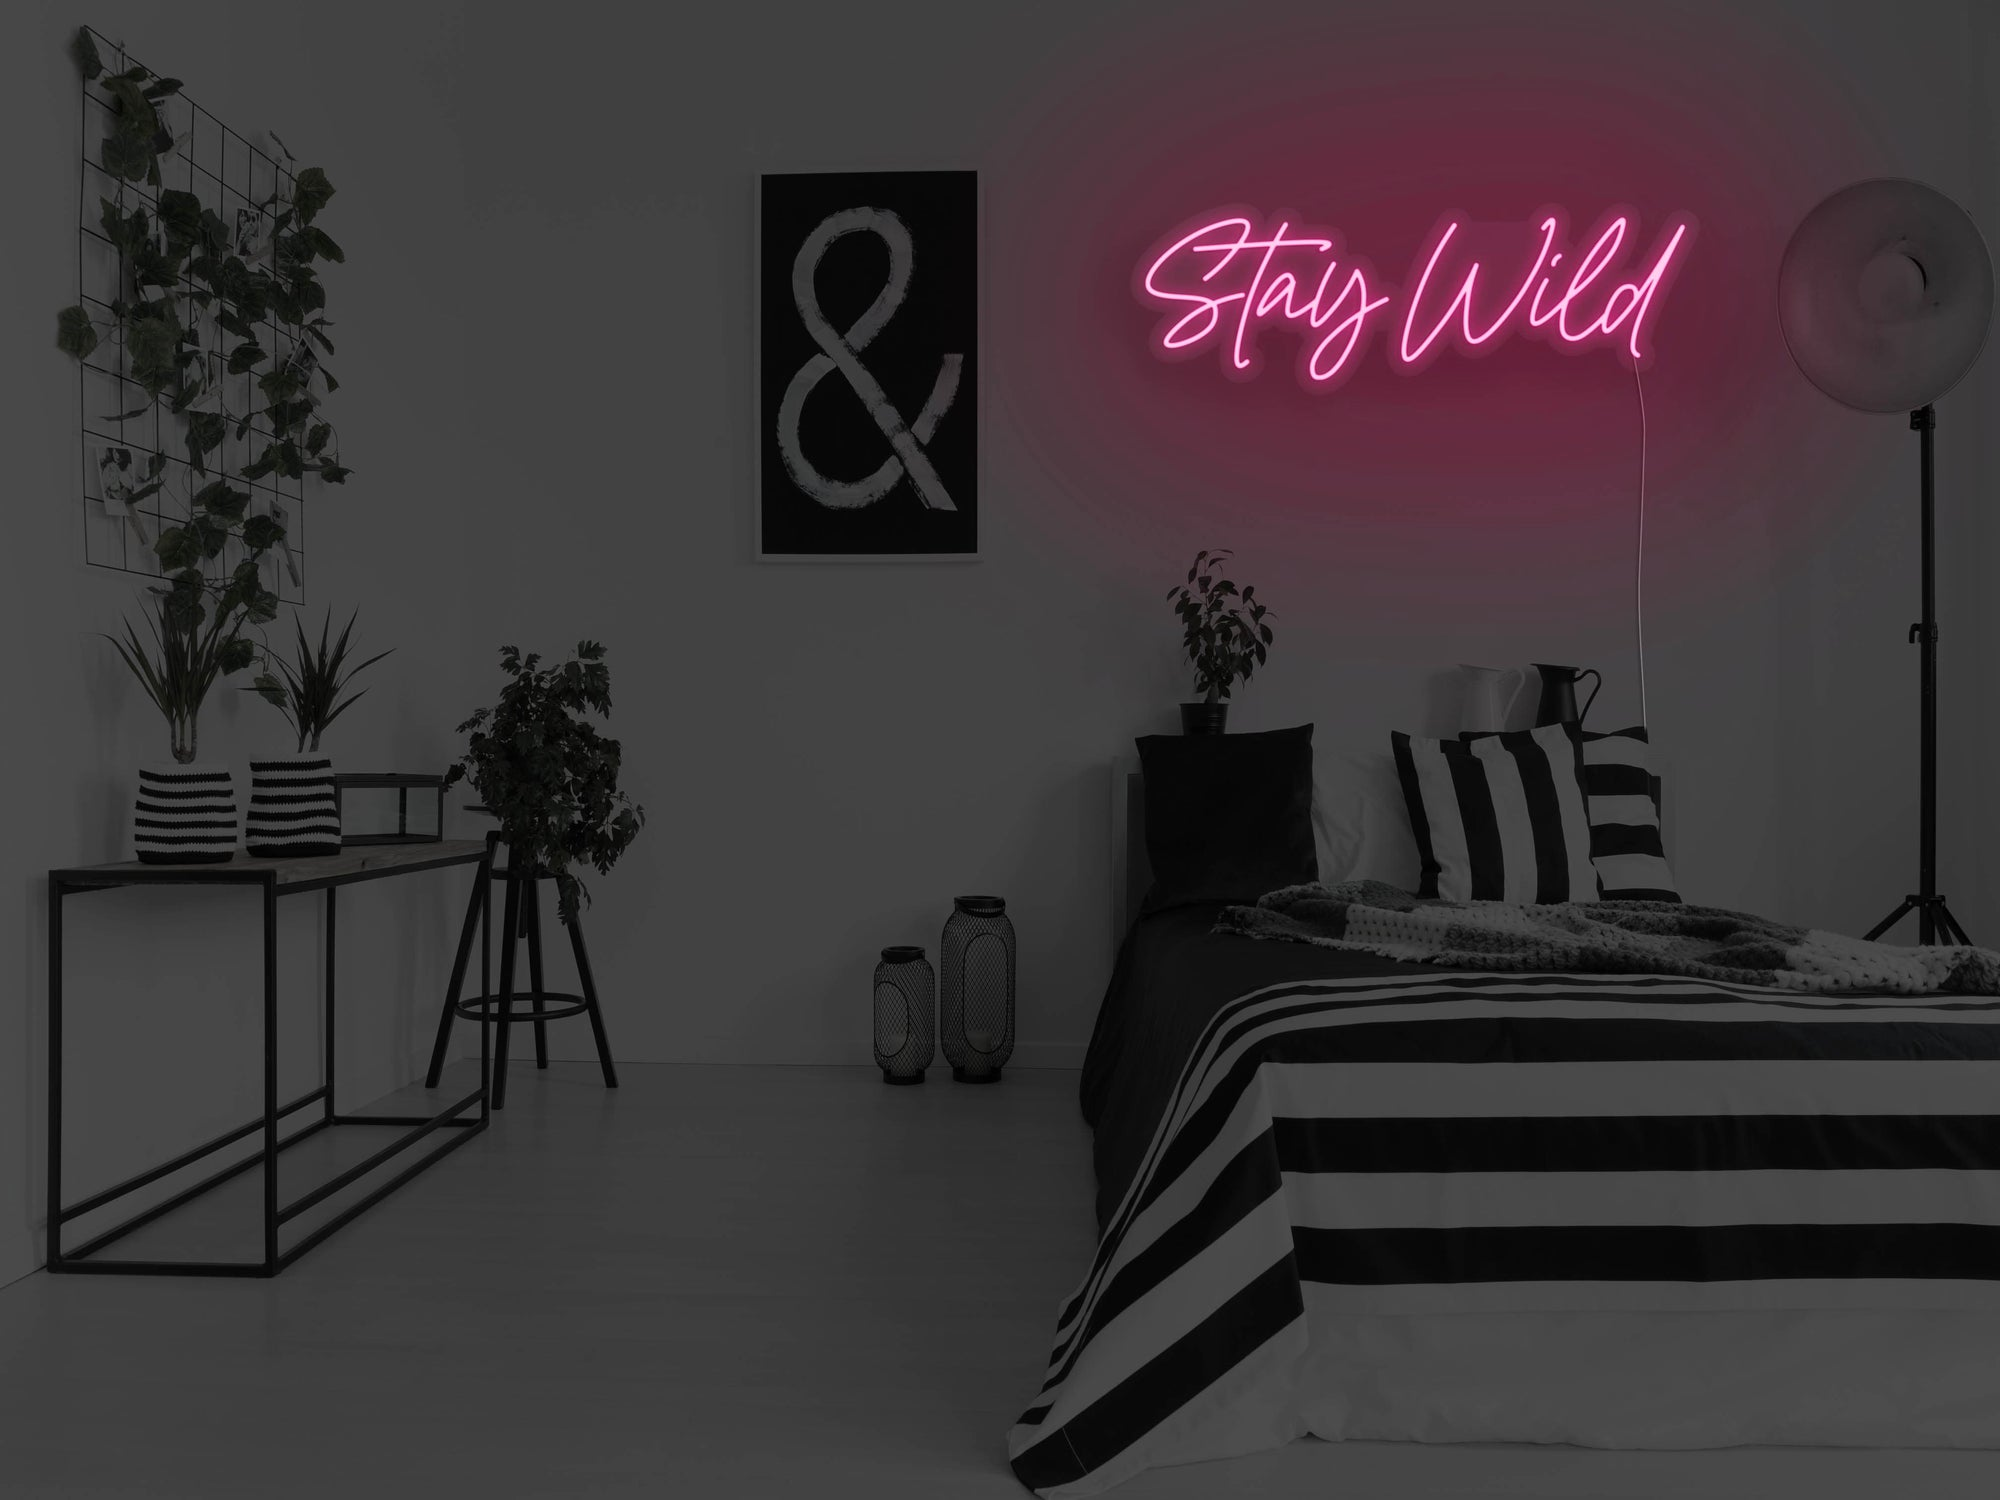 Stay Wild Version 2 LED Neon Sign